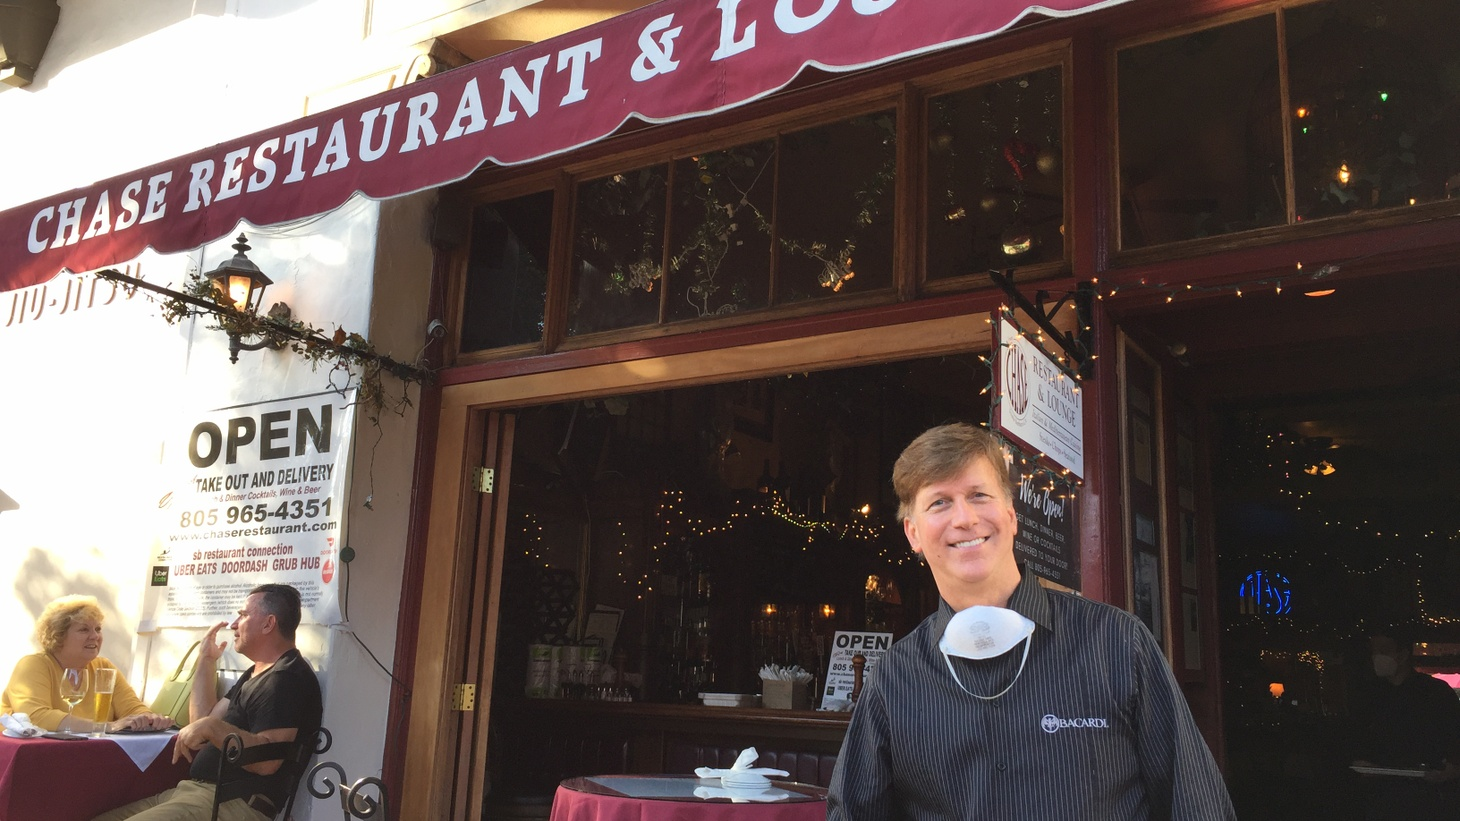 Warren Butler manages The Chase Restaurant in Santa Barbara. He says they're taking full advantage of the new rules allowing eateries to expand out onto the sidewalk.